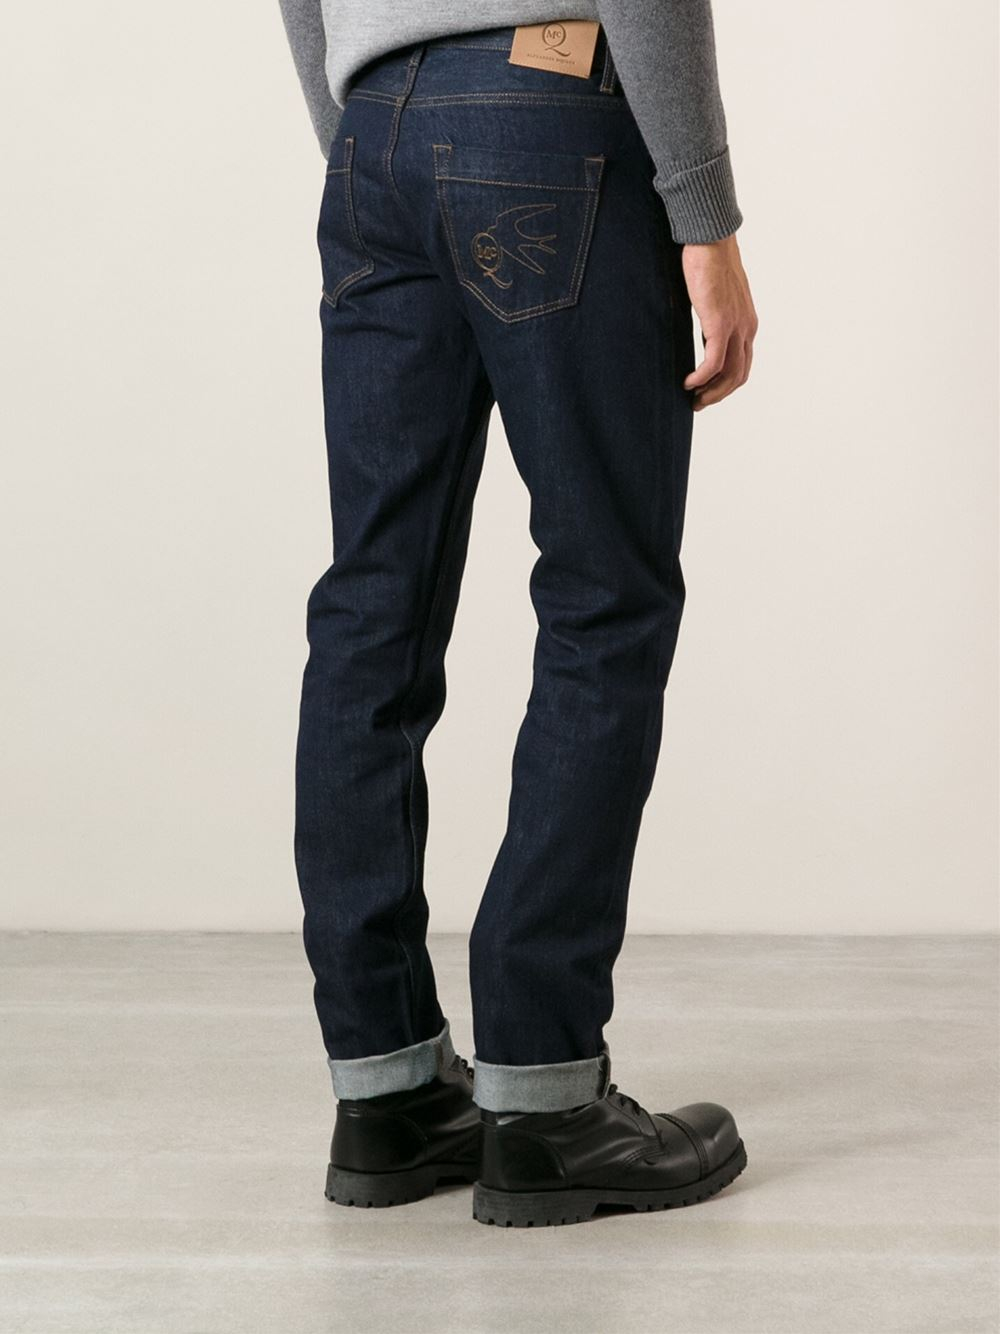 slim-fit jeans - Blue Alexander McQueen Buy Cheap Big Sale Discount With Credit Card Outlet Comfortable New Styles For Sale R2uEhBvc6